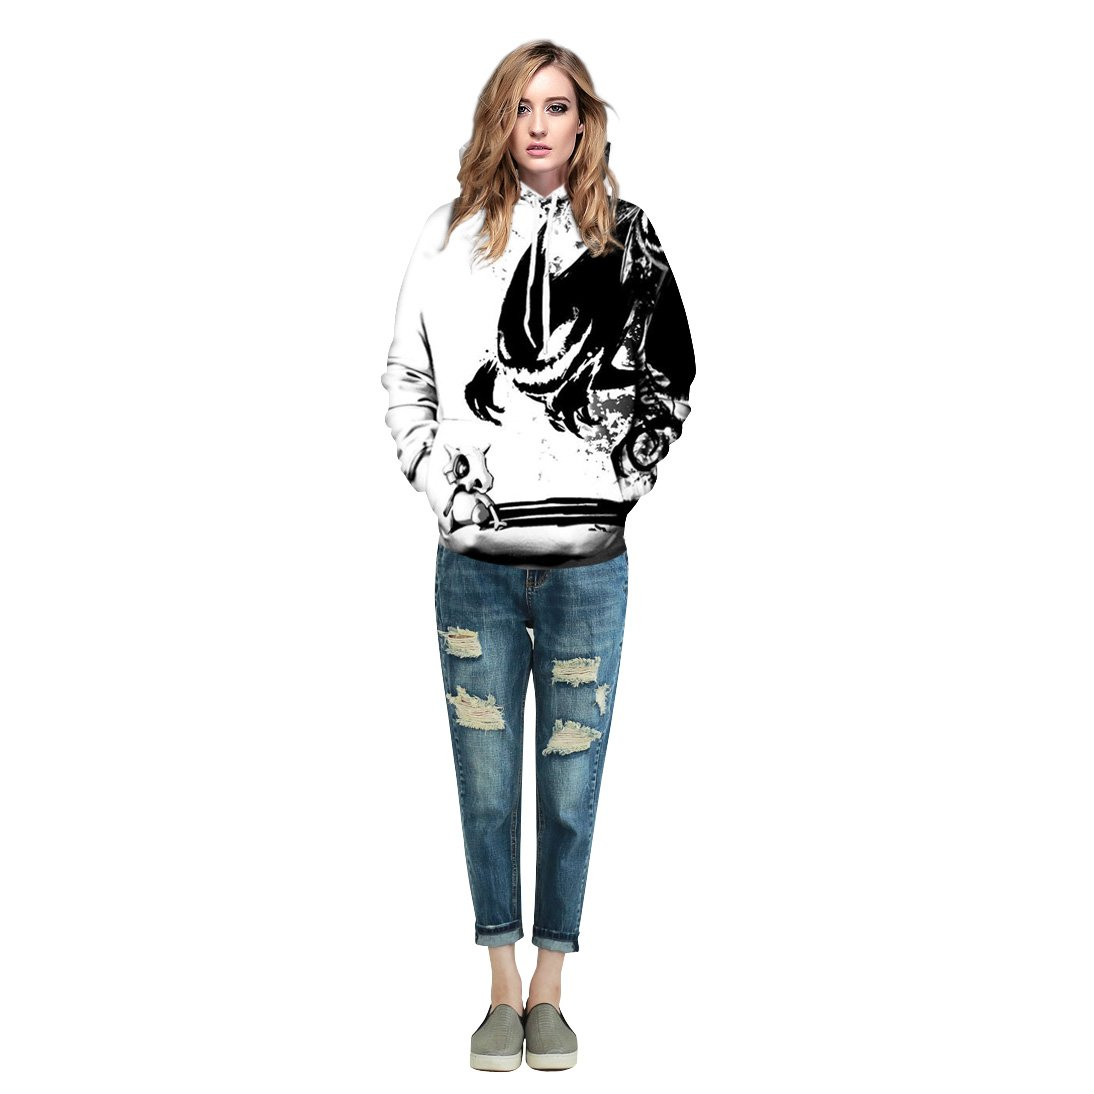 Azuki Hoodies and Sweatshirts Unisex Creative Printed Front Pockets Pullover Hooded S-XL